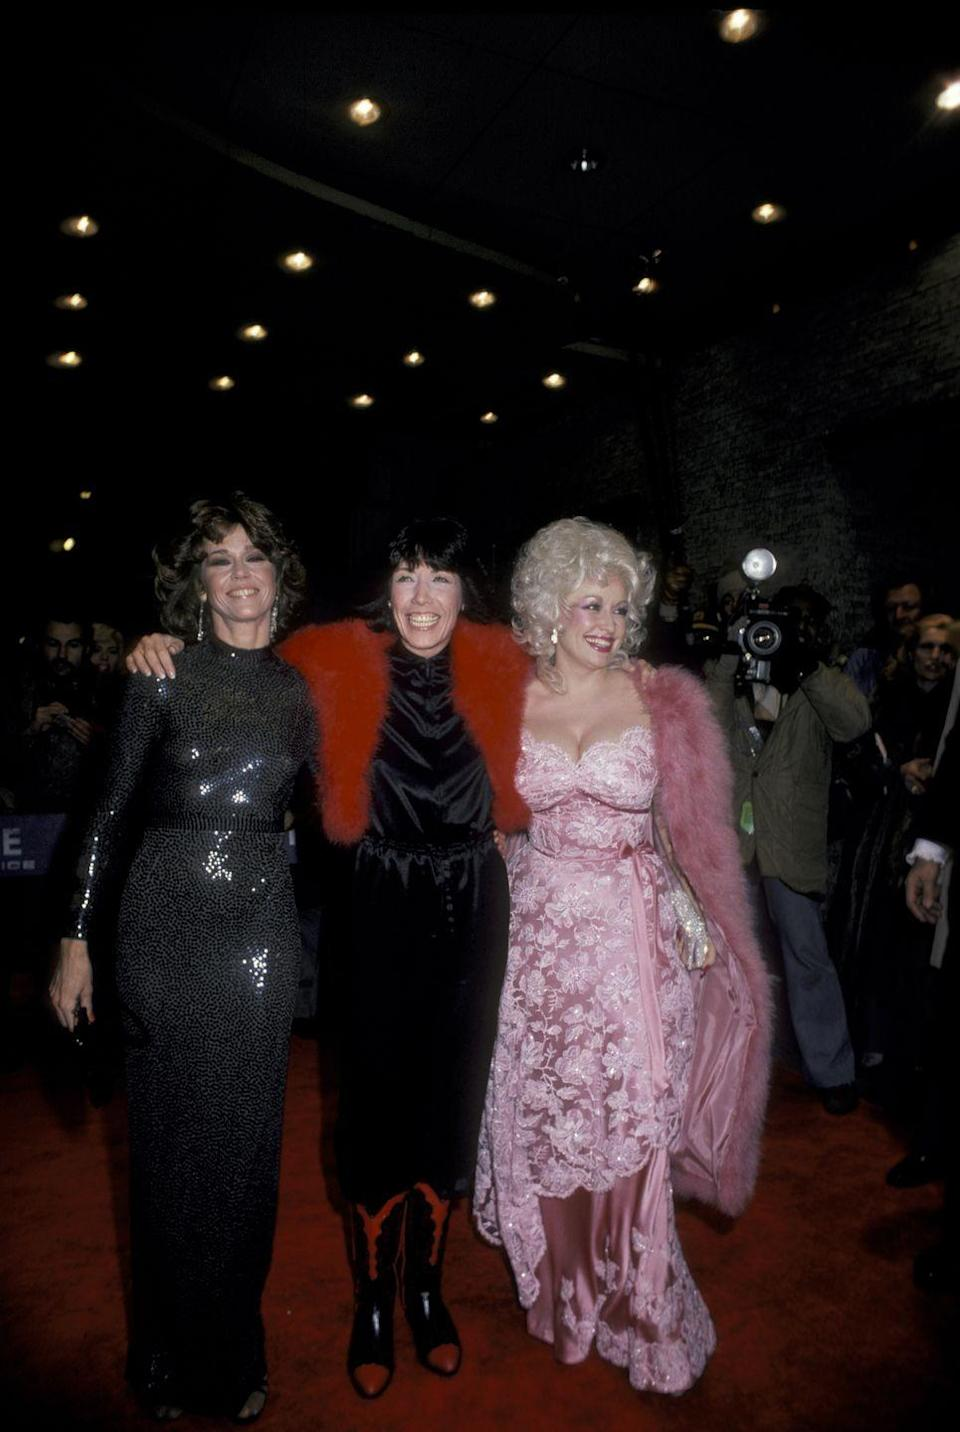 """<p>While Dolly Parton had released more than a dozen albums before 1980's """"9 to 5,"""" this was her first movie role. For the premiere, Dolly hired costume designer Ann Roth to create a red carpet-worthy gown. Dolly <a href=""""https://people.com/style/dolly-parton-breaks-down-her-most-iconic-fashion-moments/"""" rel=""""nofollow noopener"""" target=""""_blank"""" data-ylk=""""slk:told People"""" class=""""link rapid-noclick-resp"""">told <em>People</em></a> that this was the first time she truly felt fashionable after nearly 15 years of limelight.</p>"""